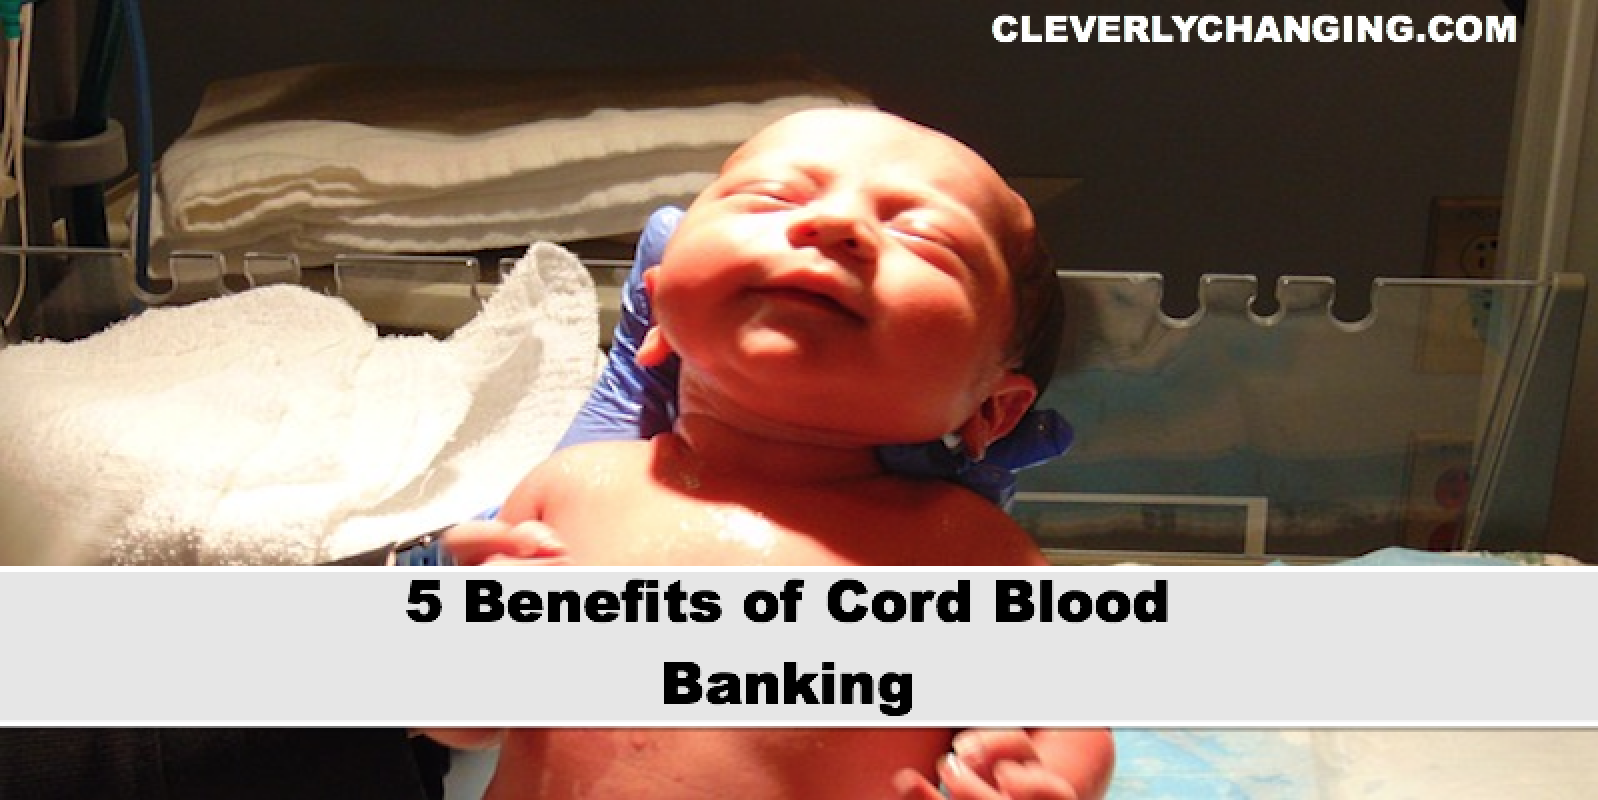 Thinking about #Cordblood #banking? Here are 5 reasons to consider it. #expecting #moms #pregnancy